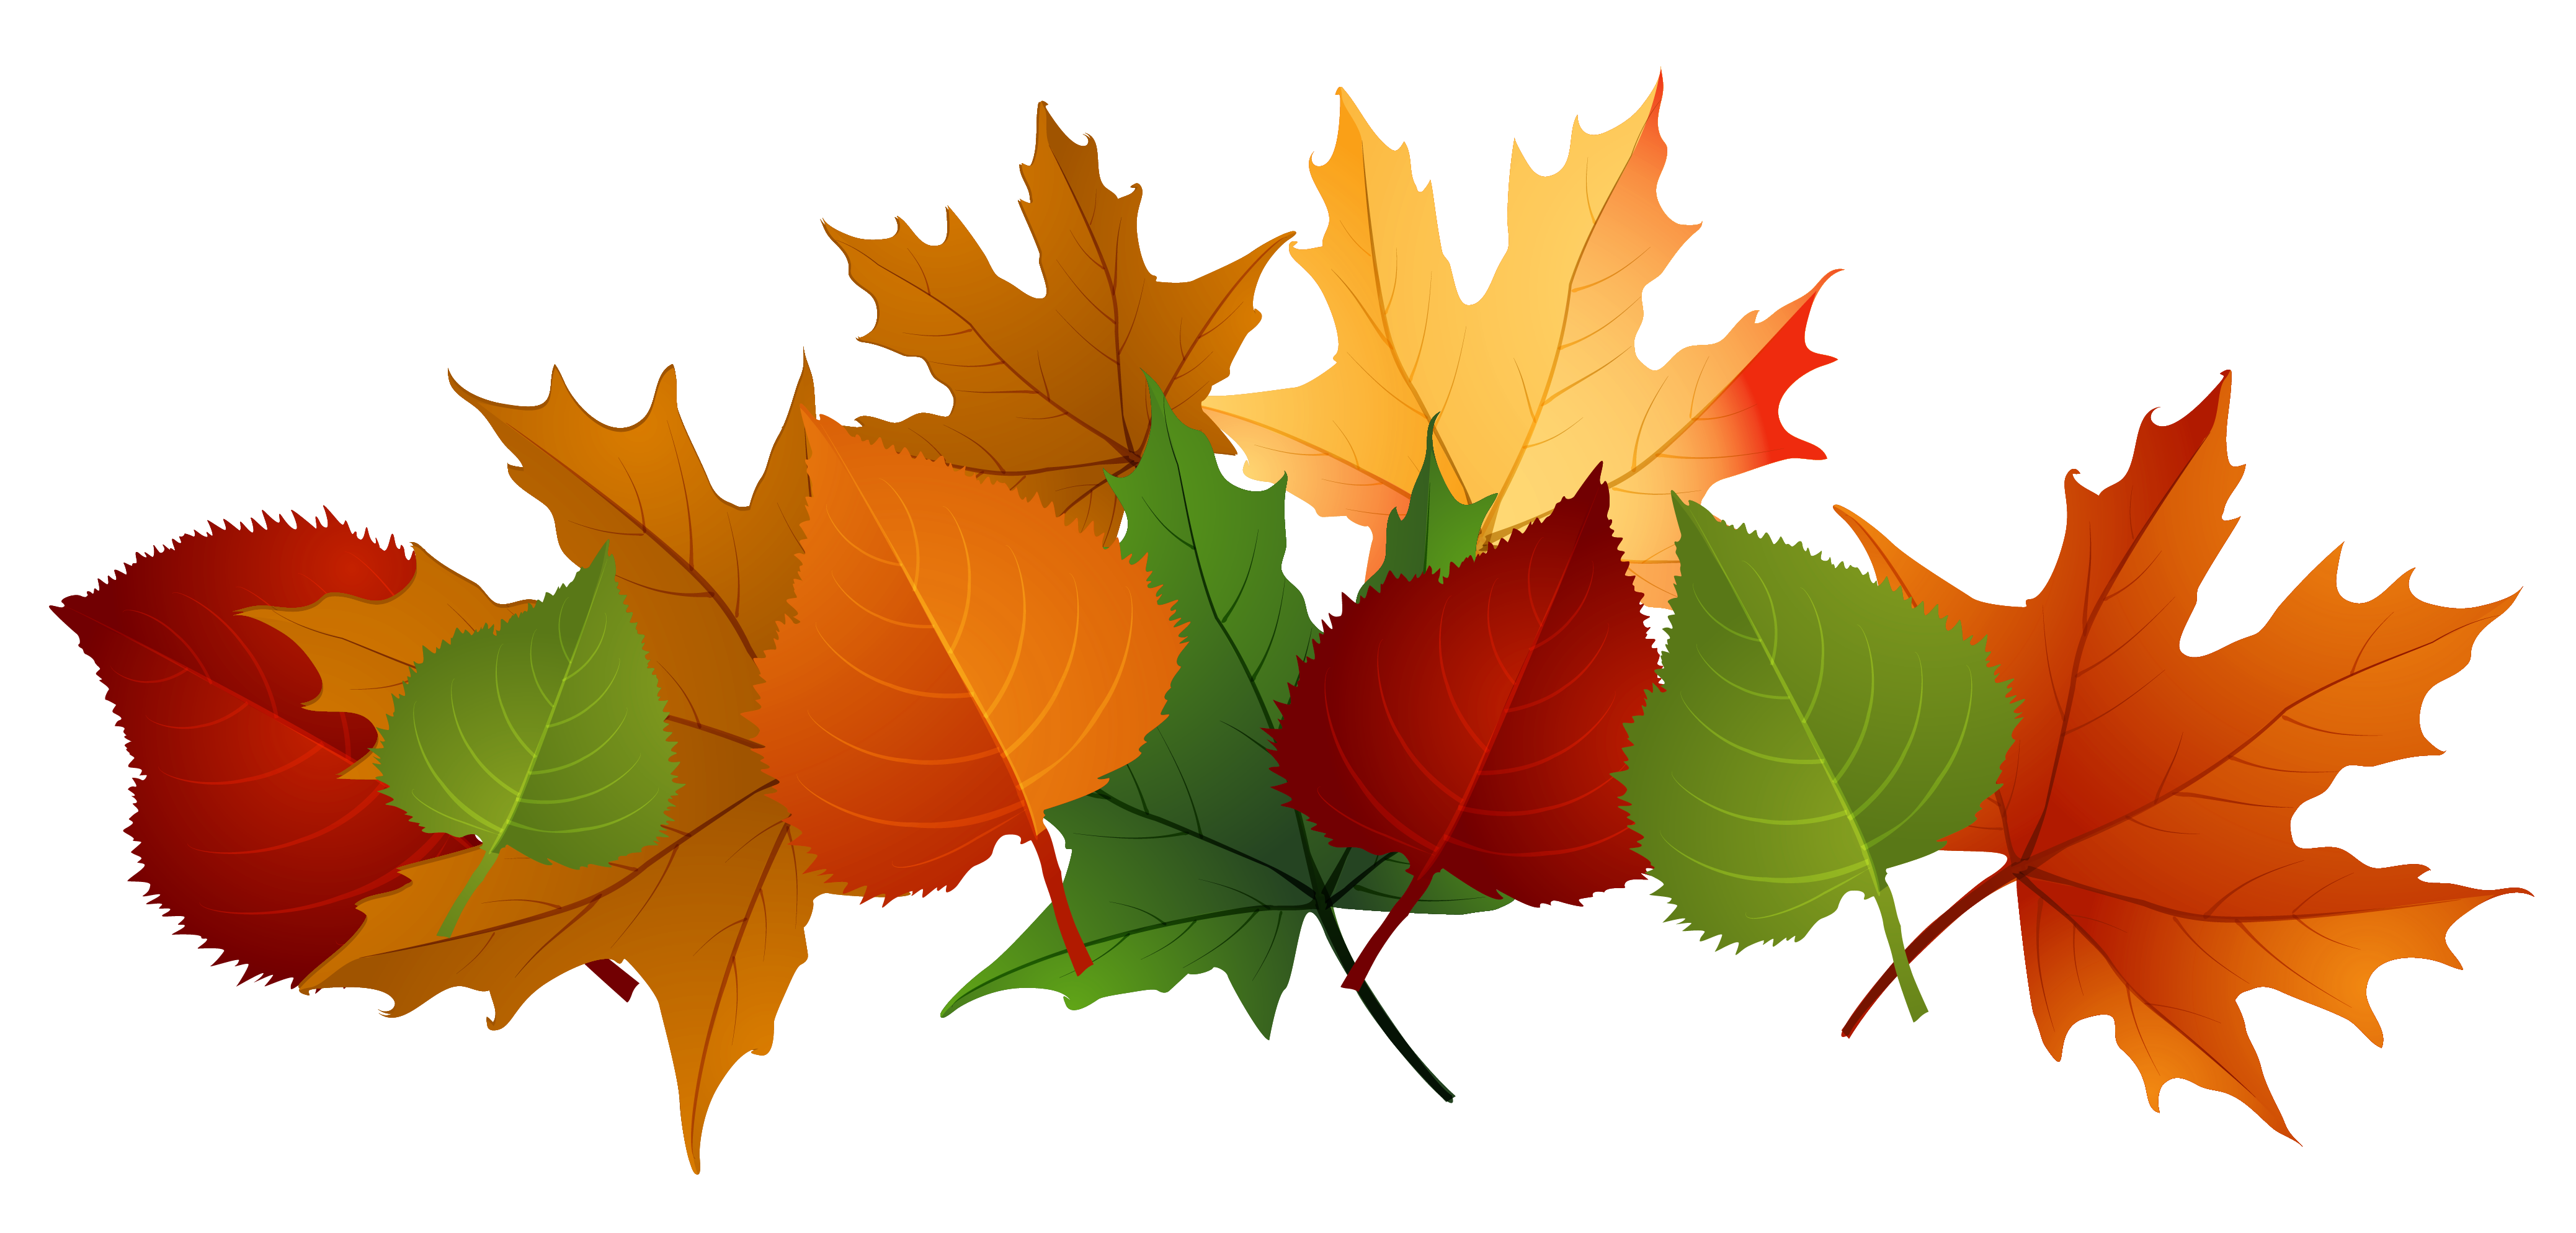 Image Result For Fall Leaves Clipart Fall Clip Art Fall Leaves Coloring Pages Fall Leaves Png